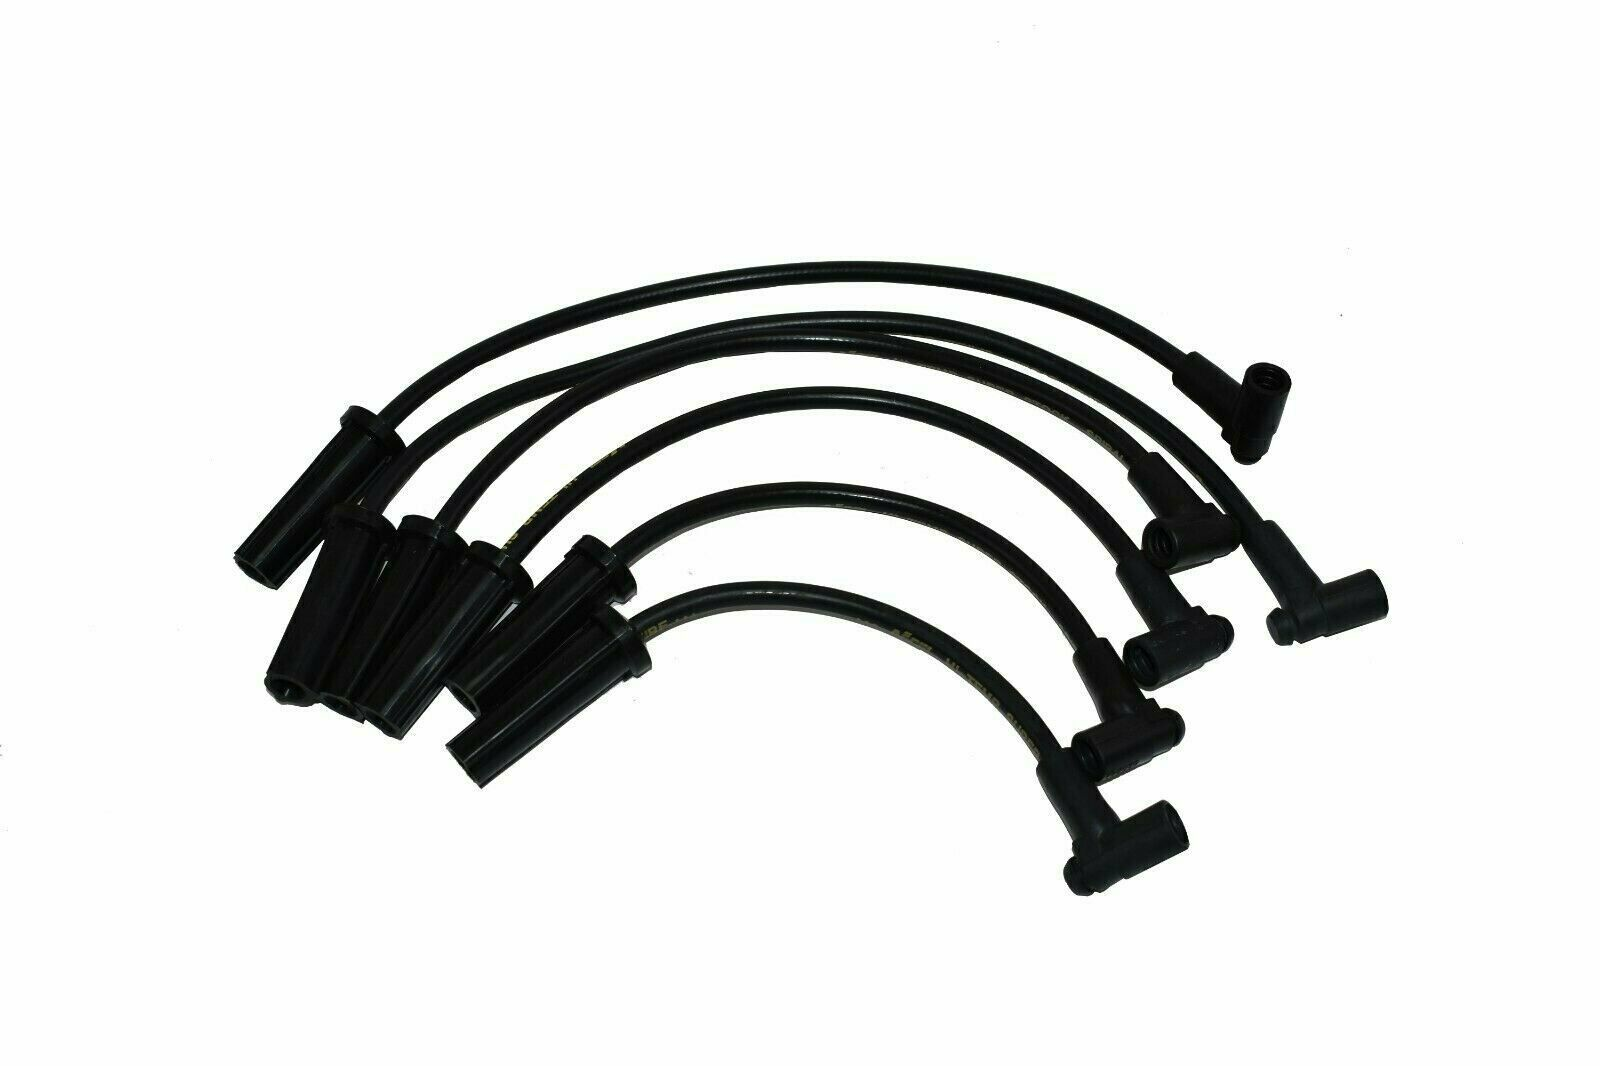 Accel  Ford Truck 6 Cylinder 250 300 6 Cyl 8.0mm Black Silicone Wires